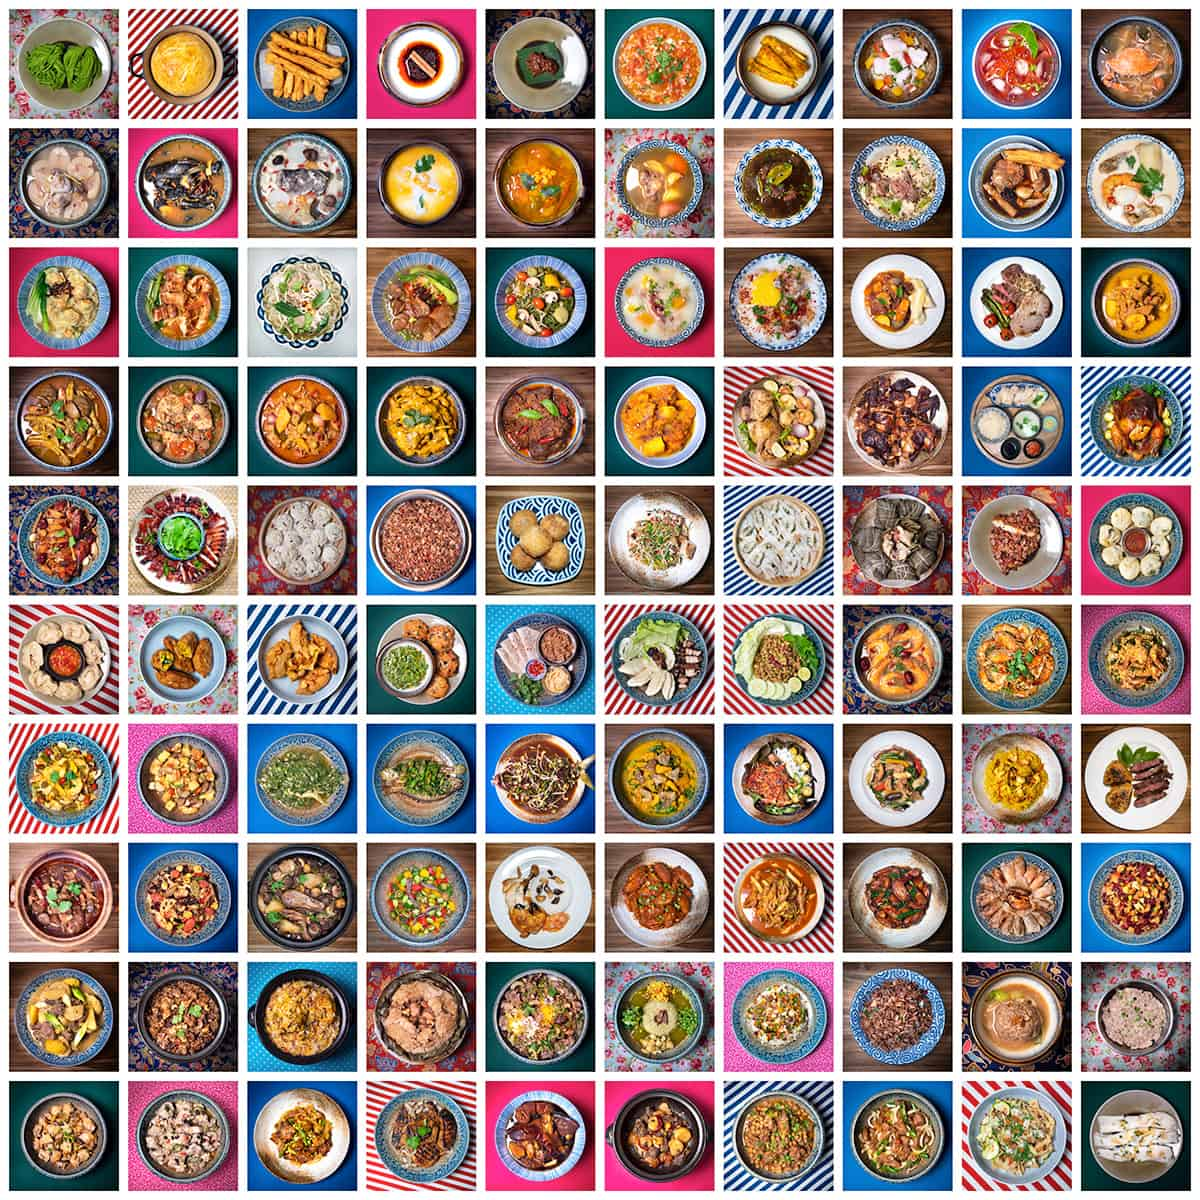 Tapestry of 100 recipes